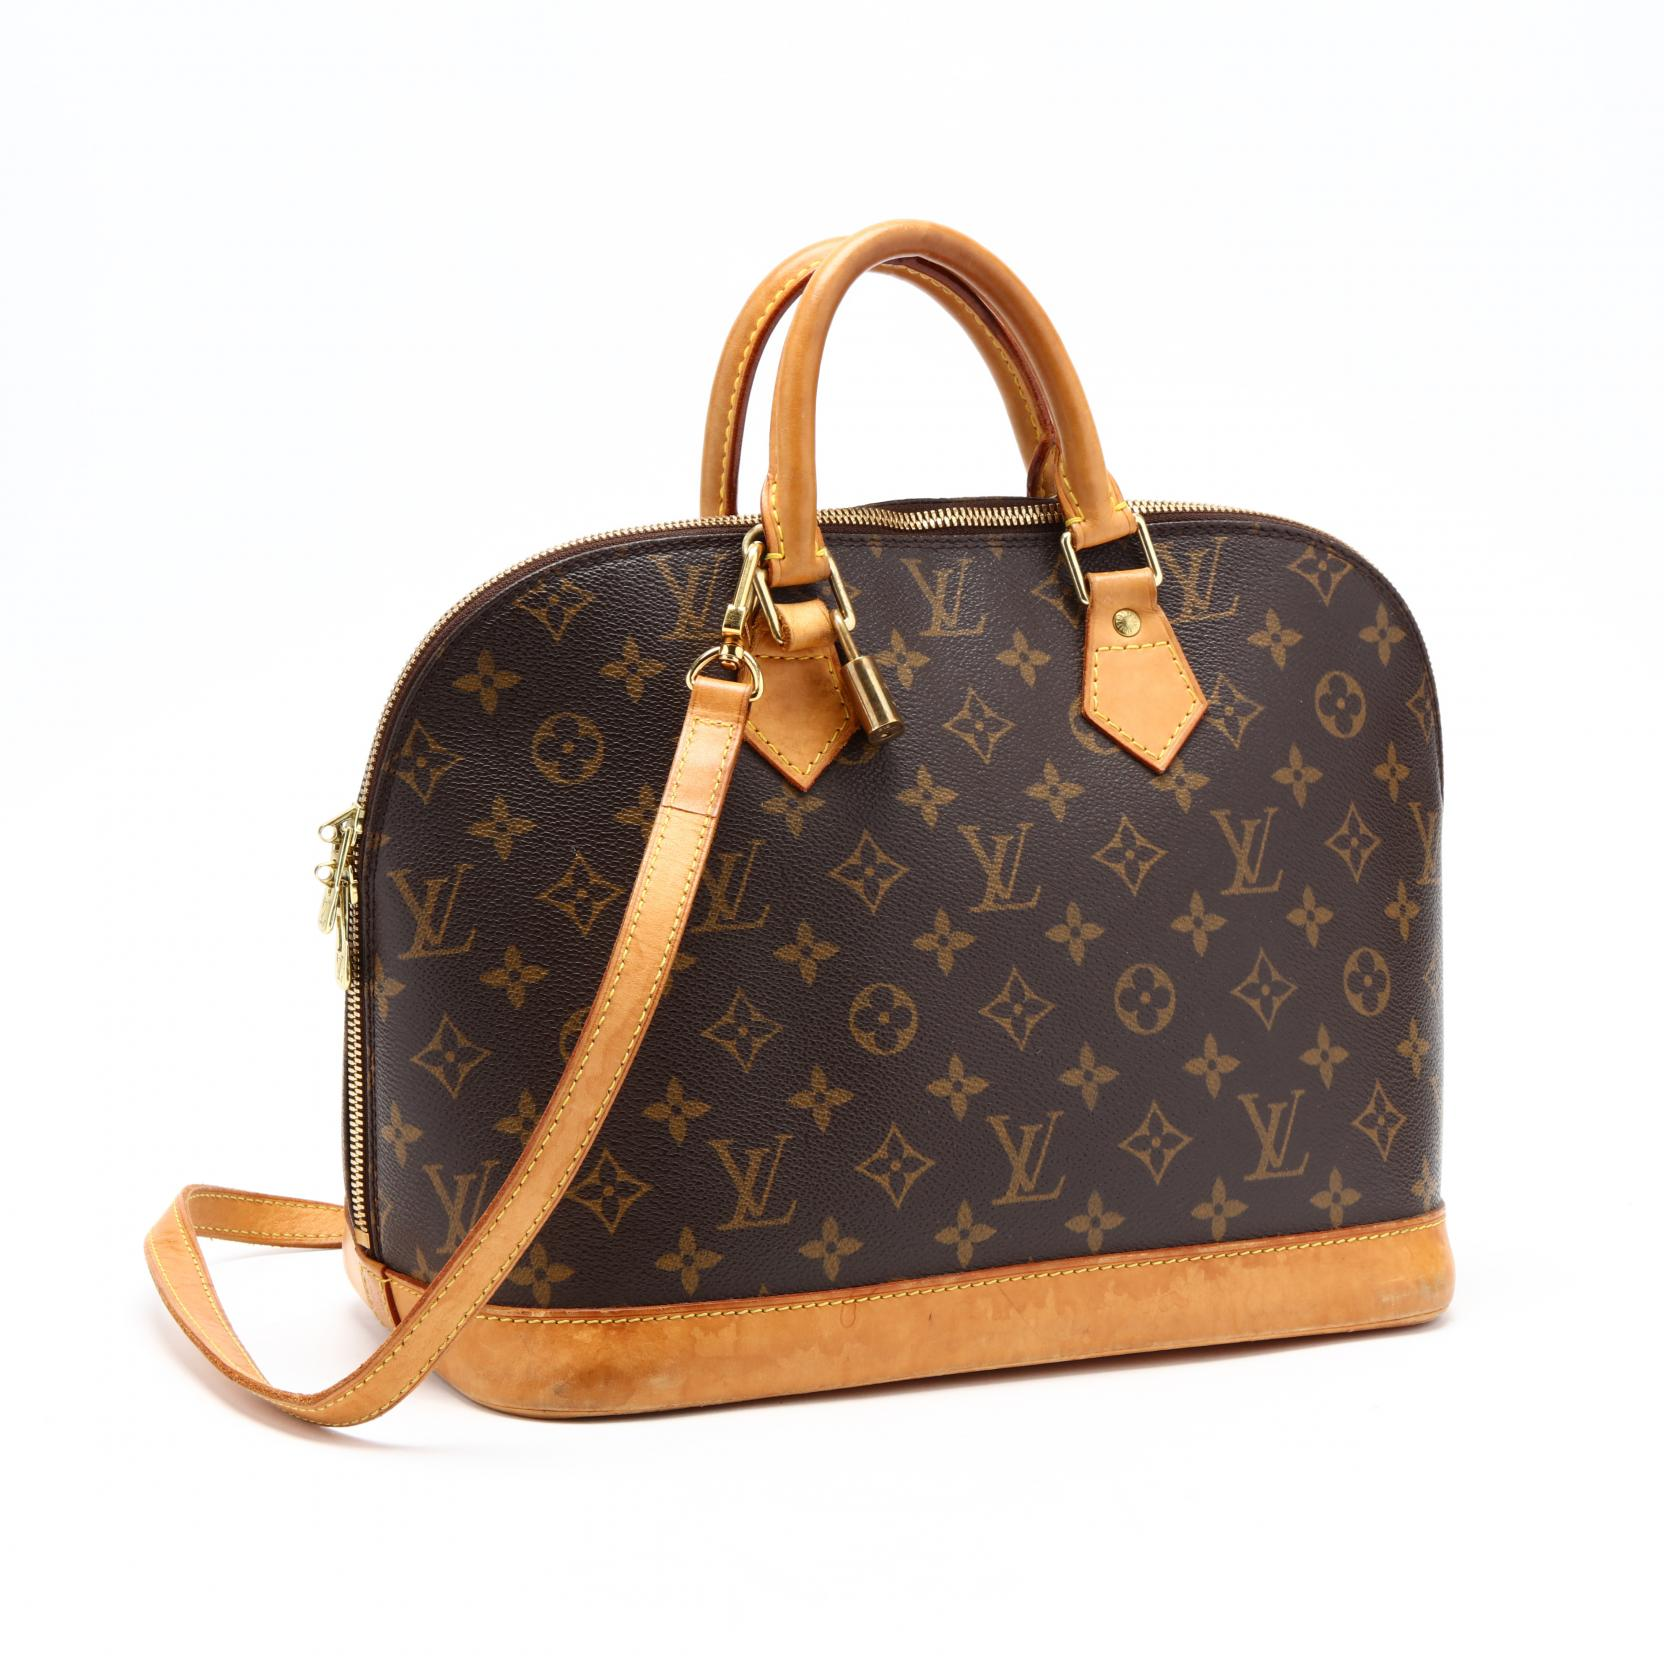 alma-top-handle-handbag-louis-vuitton